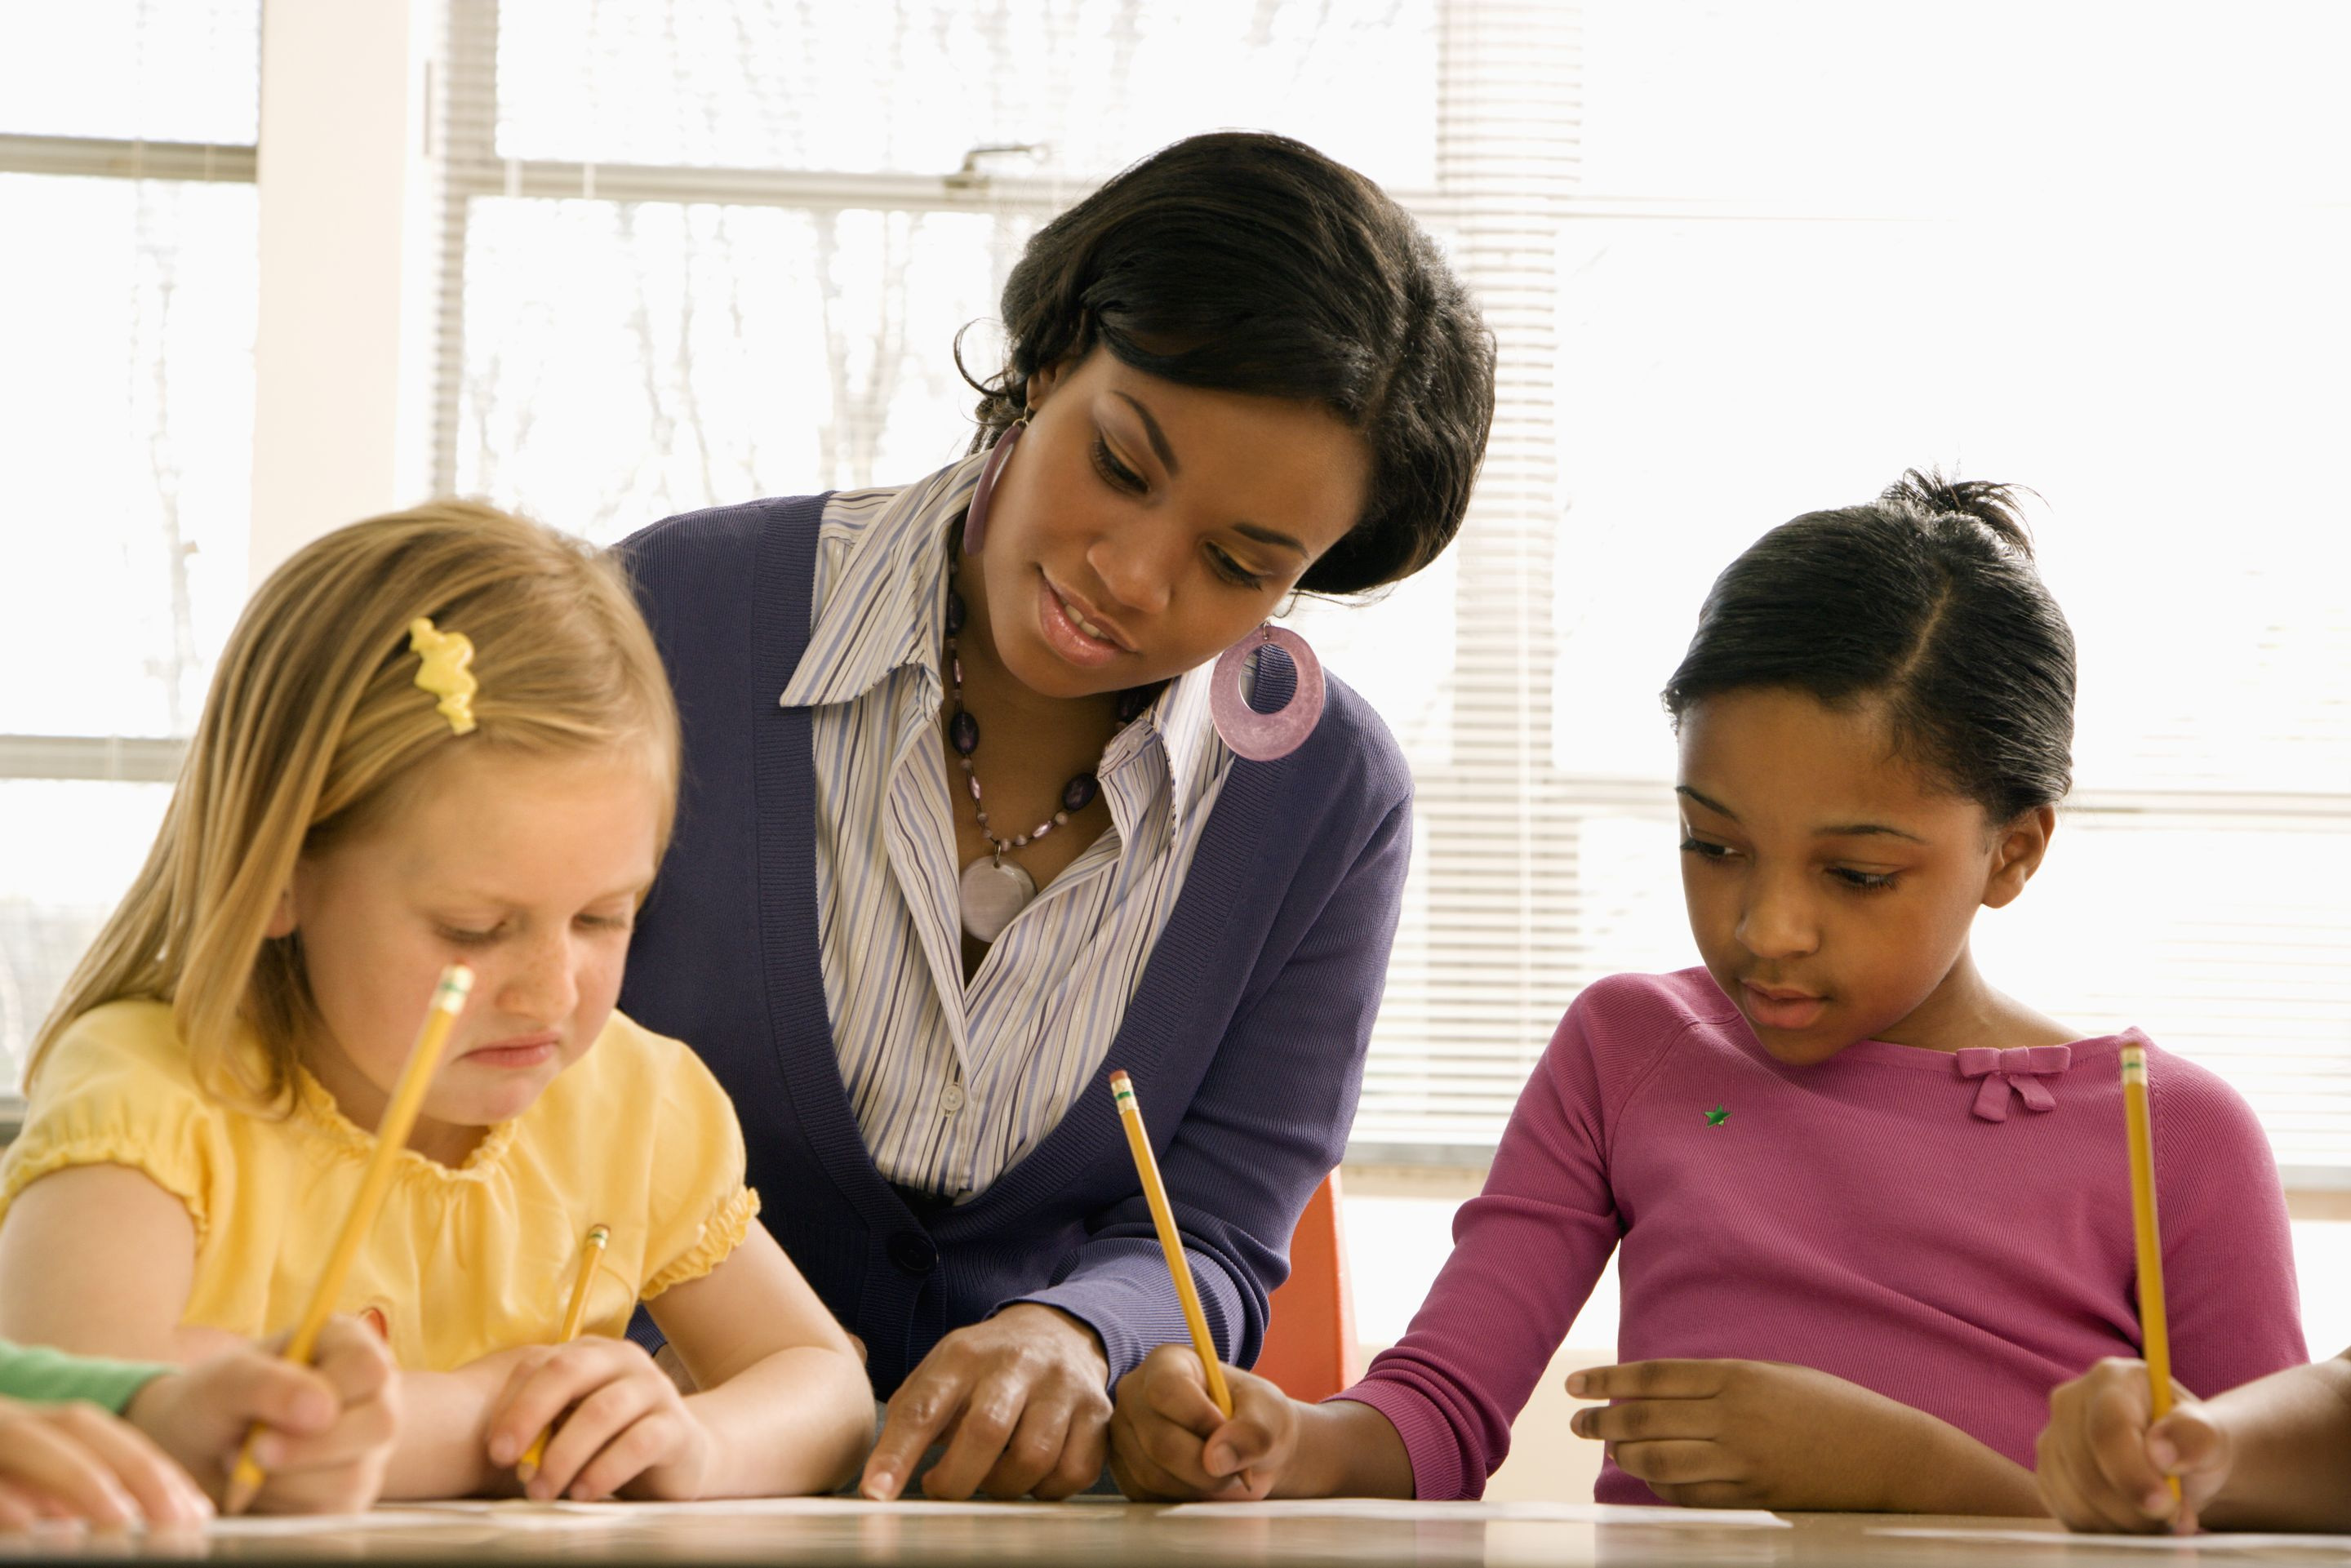 Principal looking over students' shoulders in class, checking their work